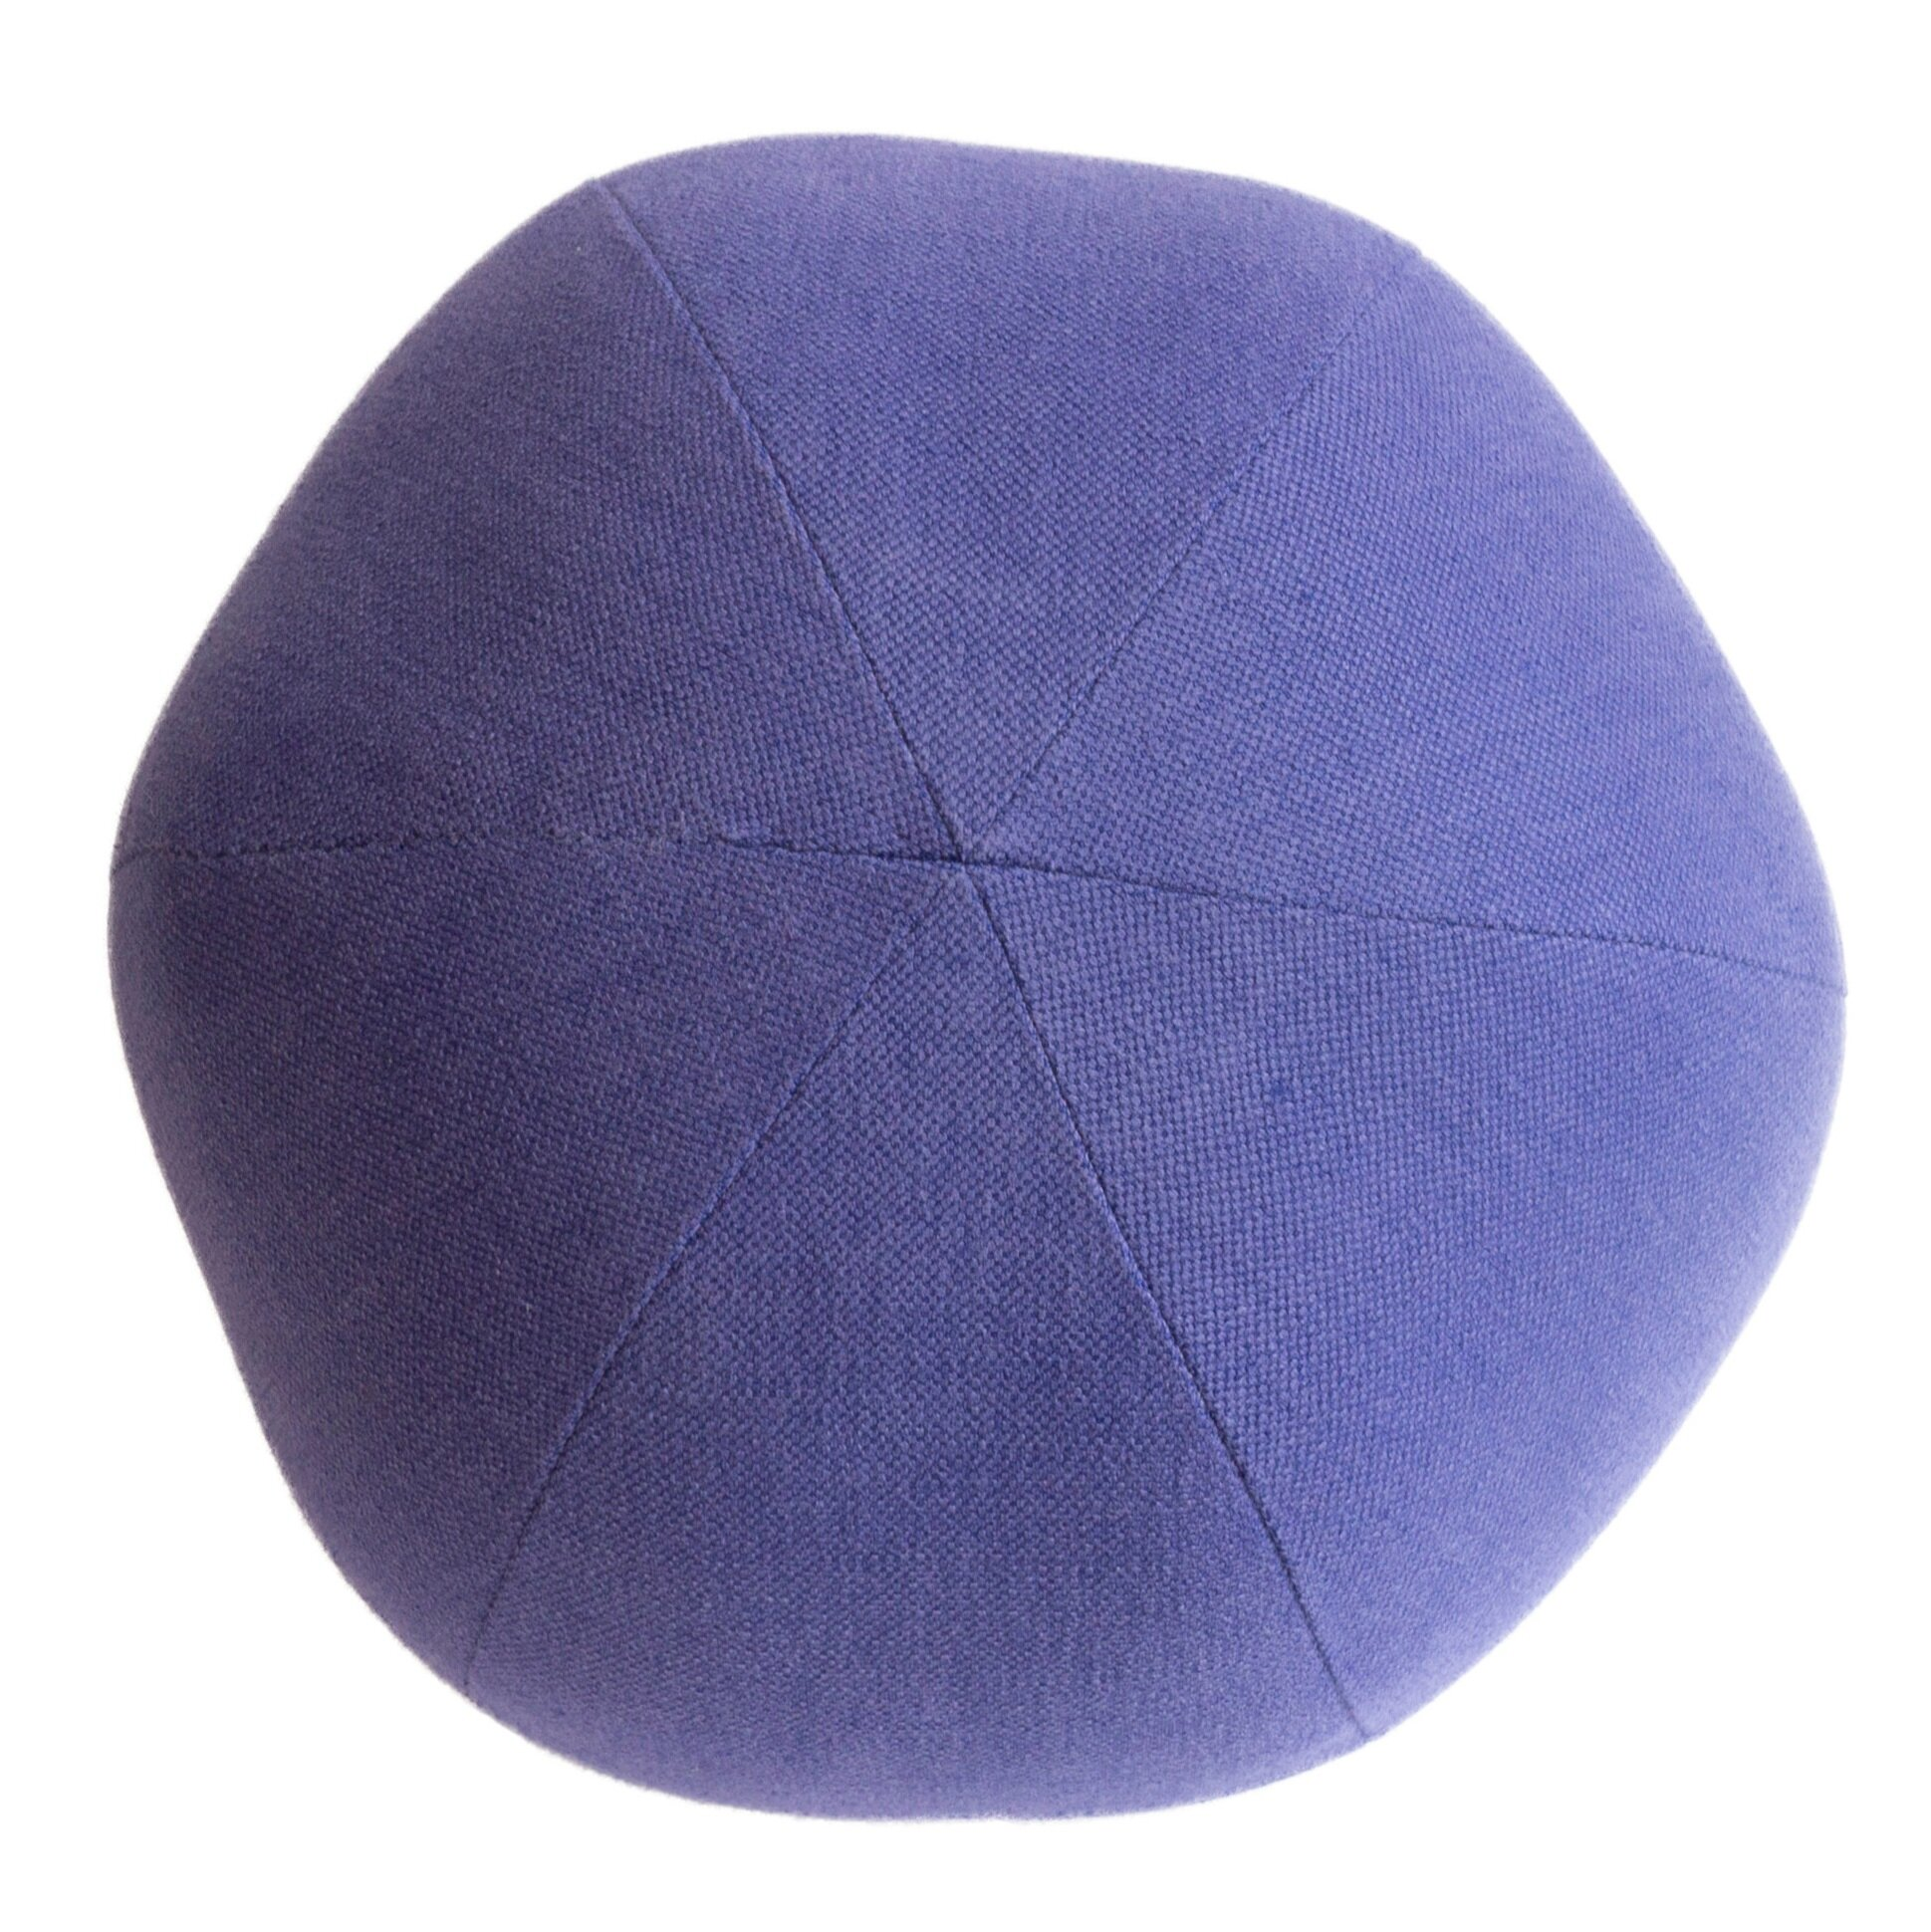 purple ball pillow the tailored home